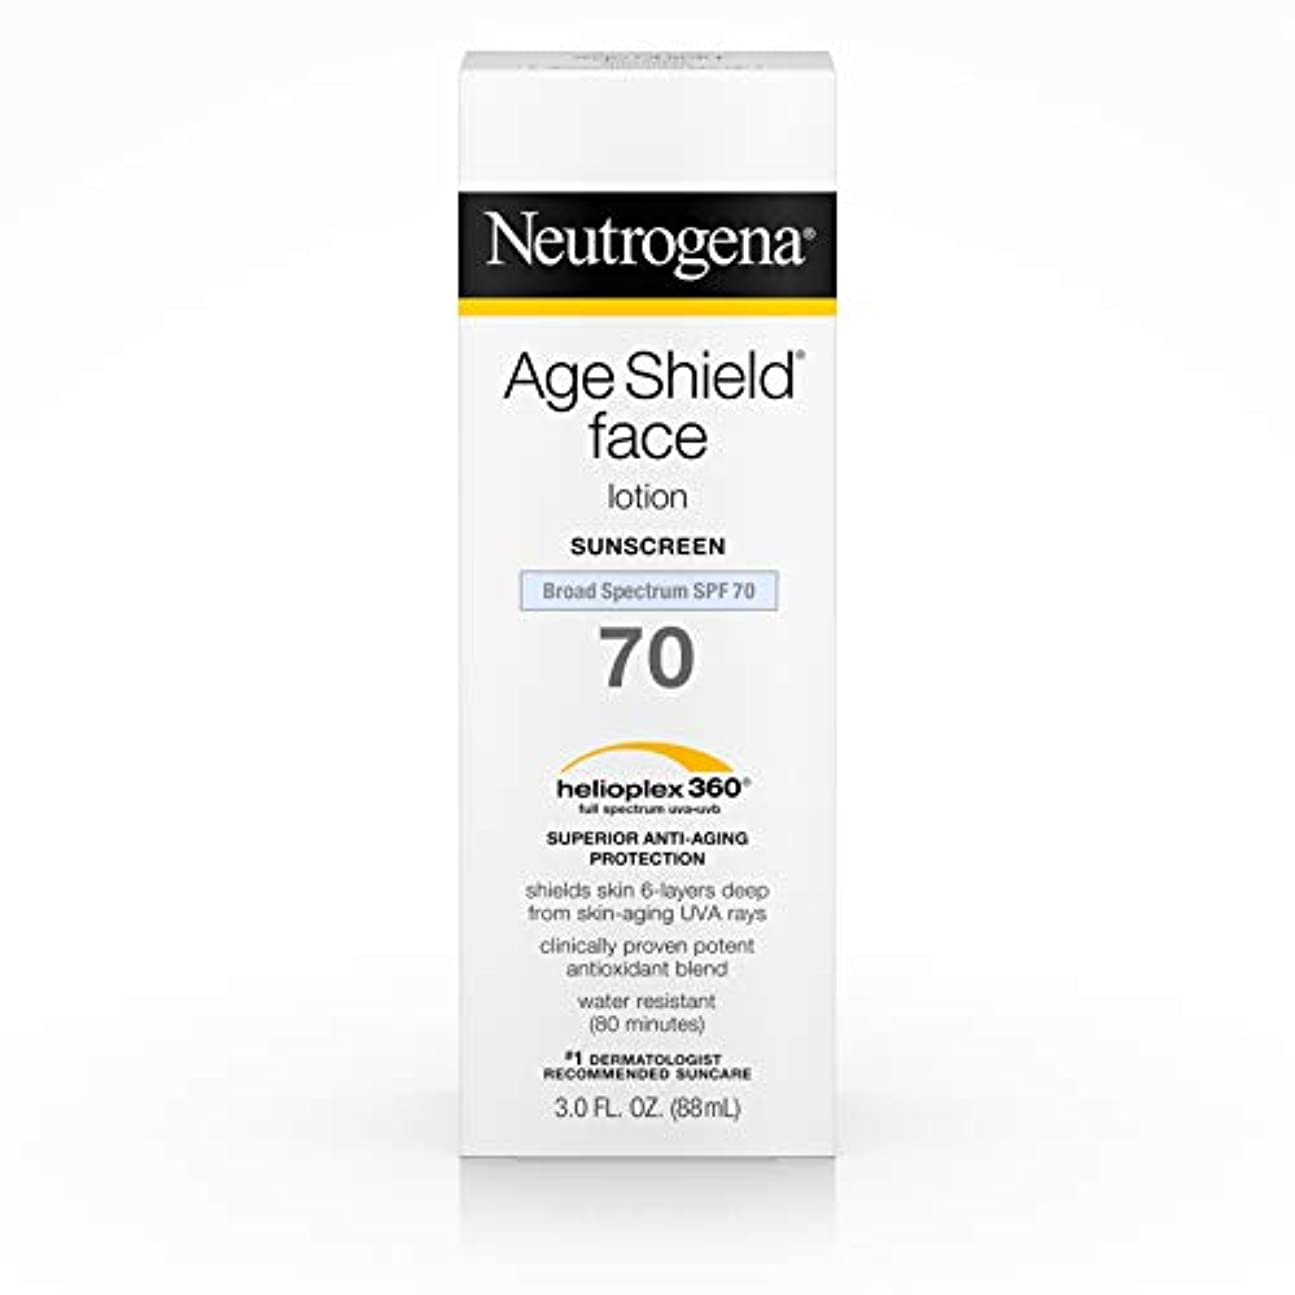 スポークスマン十代とにかくNeutrogena Age Shield Anti-Oxidant Face Lotion Sunscreen Broad Spectrum SPF 70, 3 Fluid Ounce